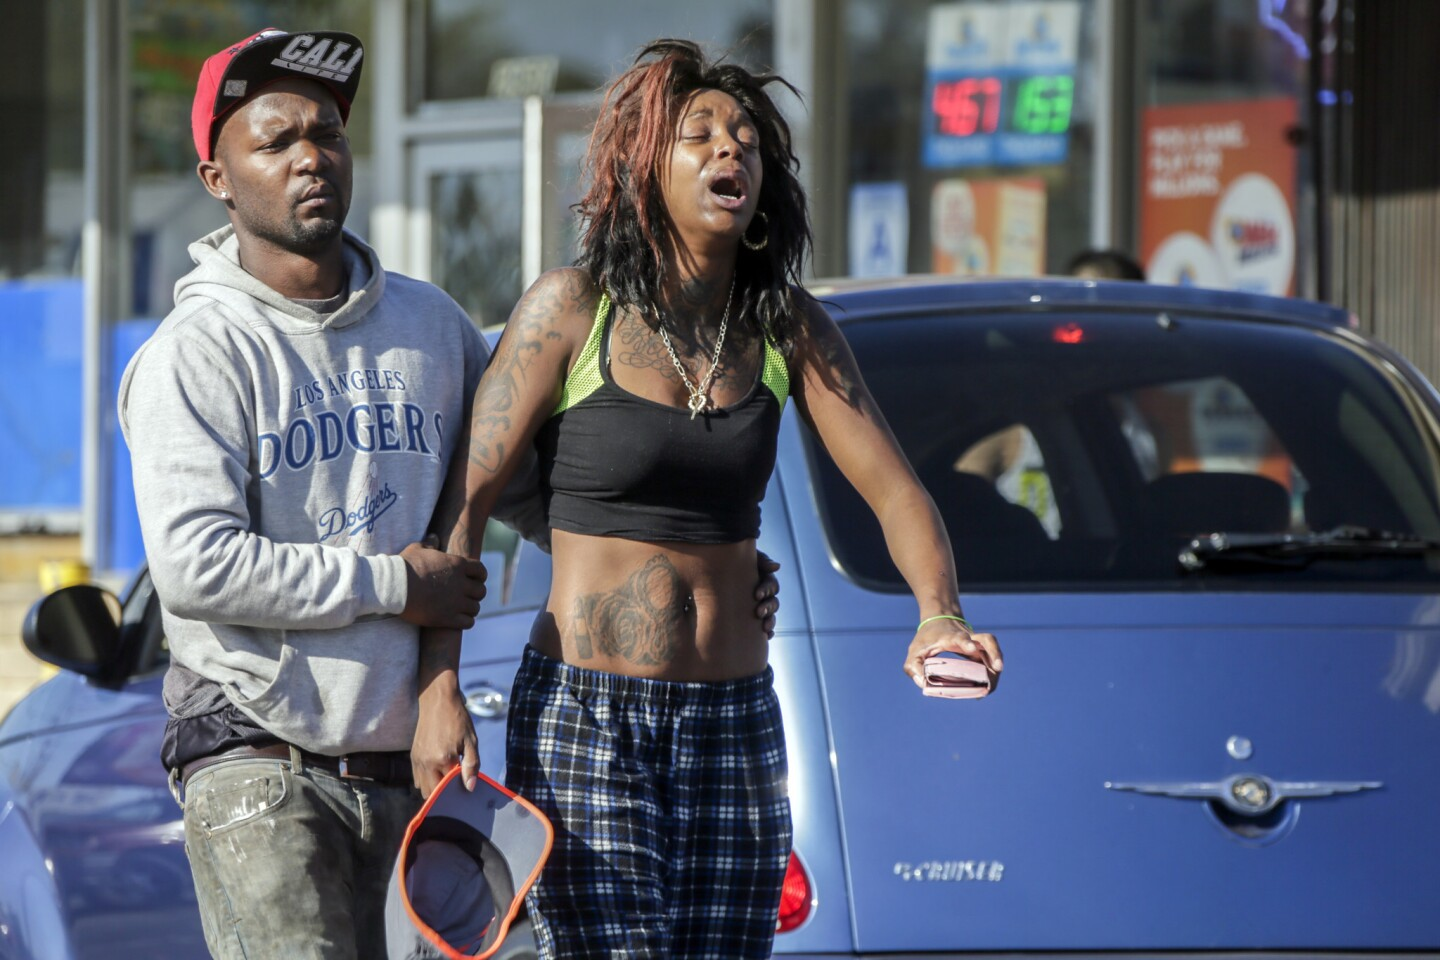 Grieving stepfather Leonard Grant, 27, left, and Ebony Newman, 27, mother of 9-year-old Travon Williams in front of the liquor store where the shooting occurred.